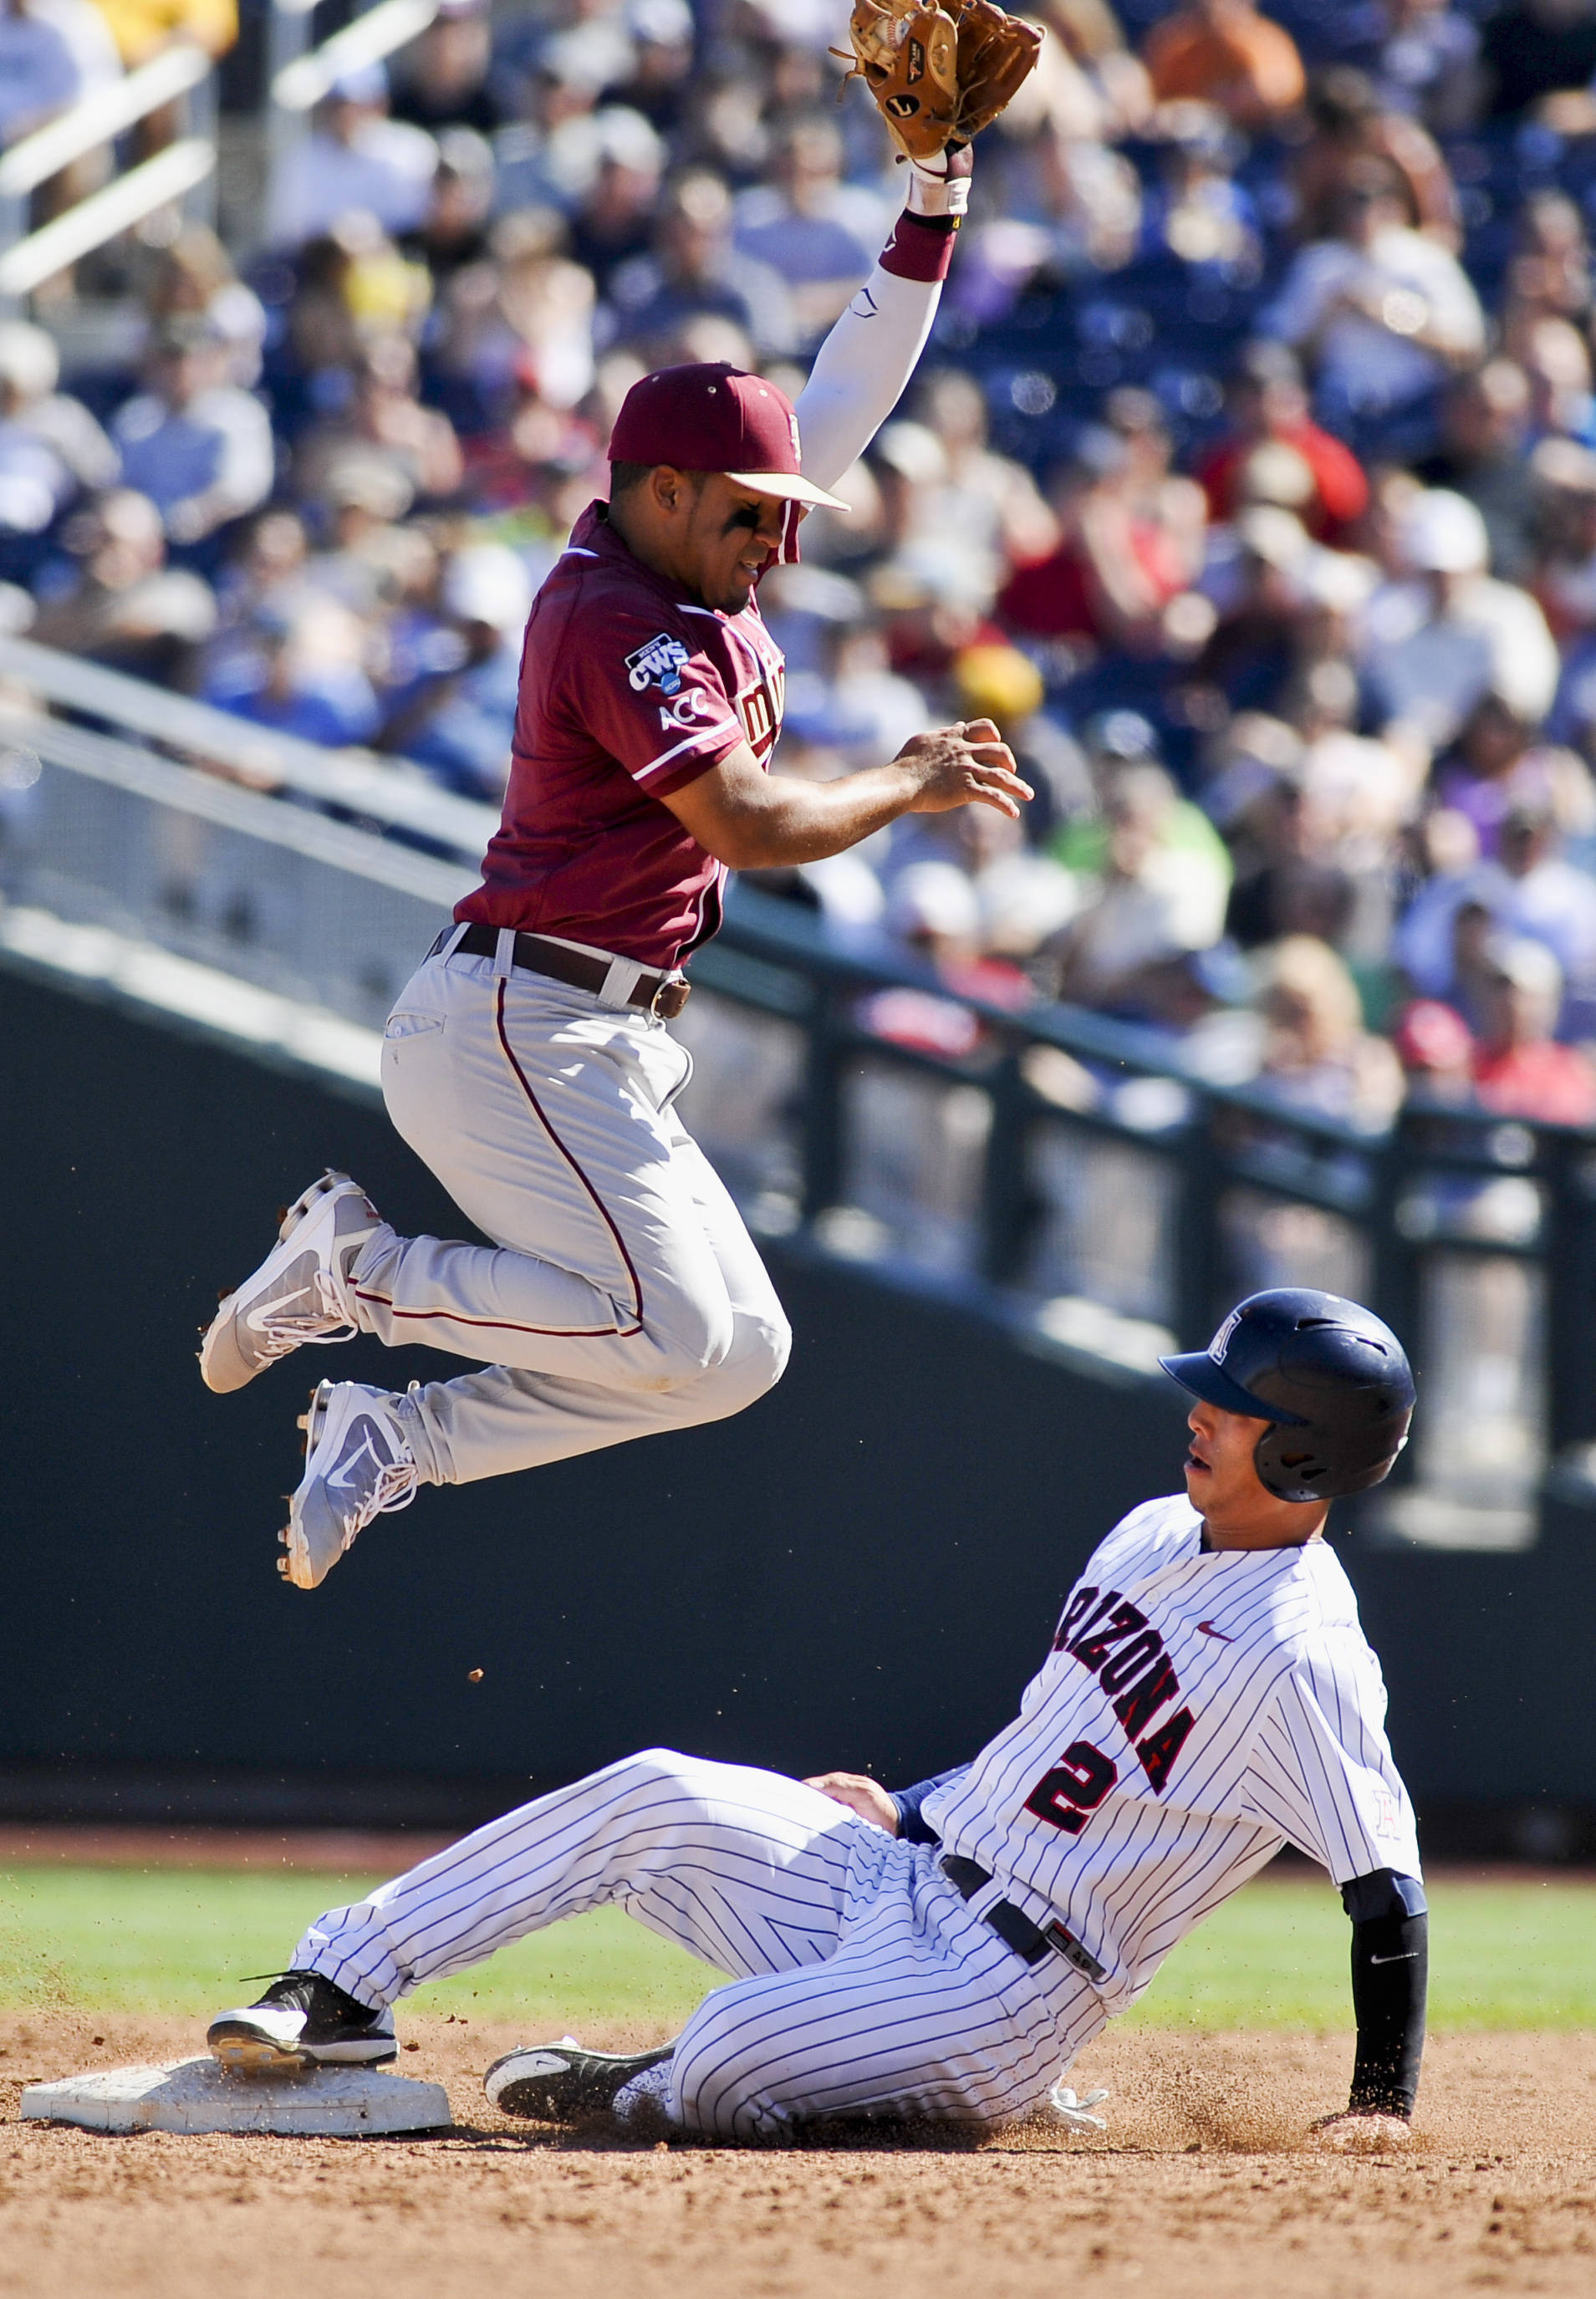 Arizona's Robert Refsnyder (2) steals second base as Florida State second baseman Devon Travis leaps for the ball during the second inning. (AP Photo/Eric Francis)